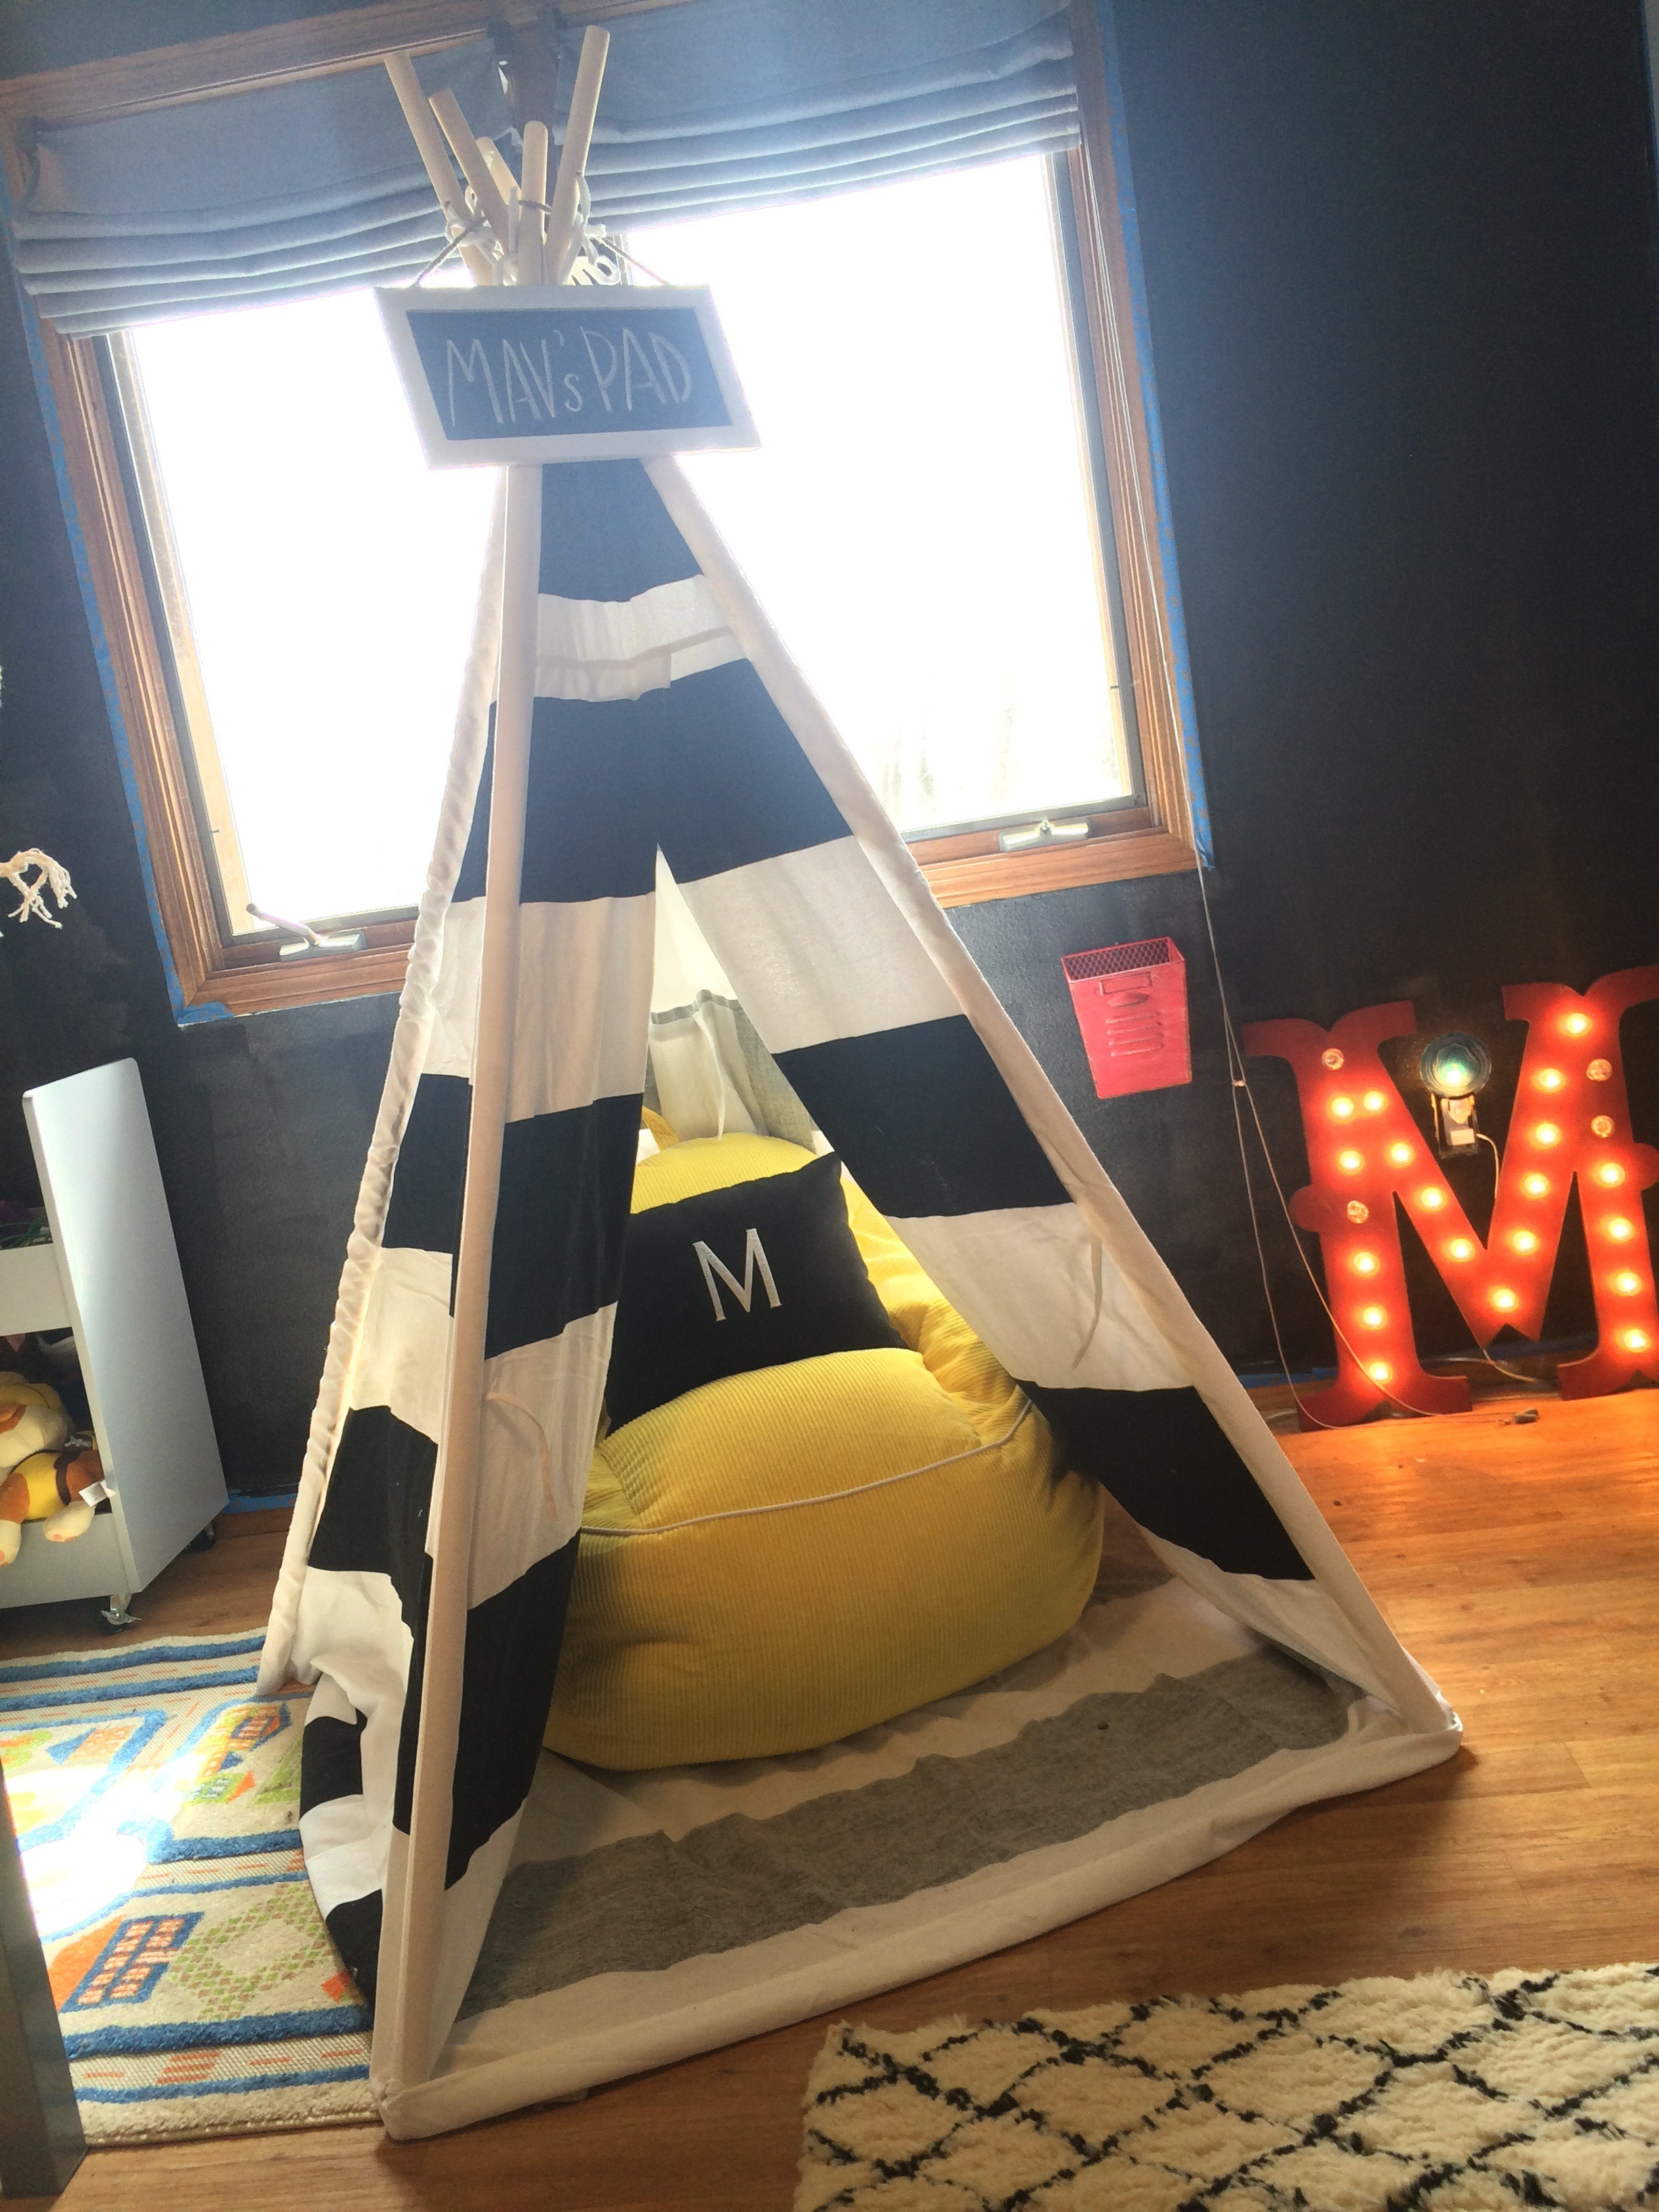 Striped teepee tent with a yellow beanbag chair inside. || RustopiaConsulting.com